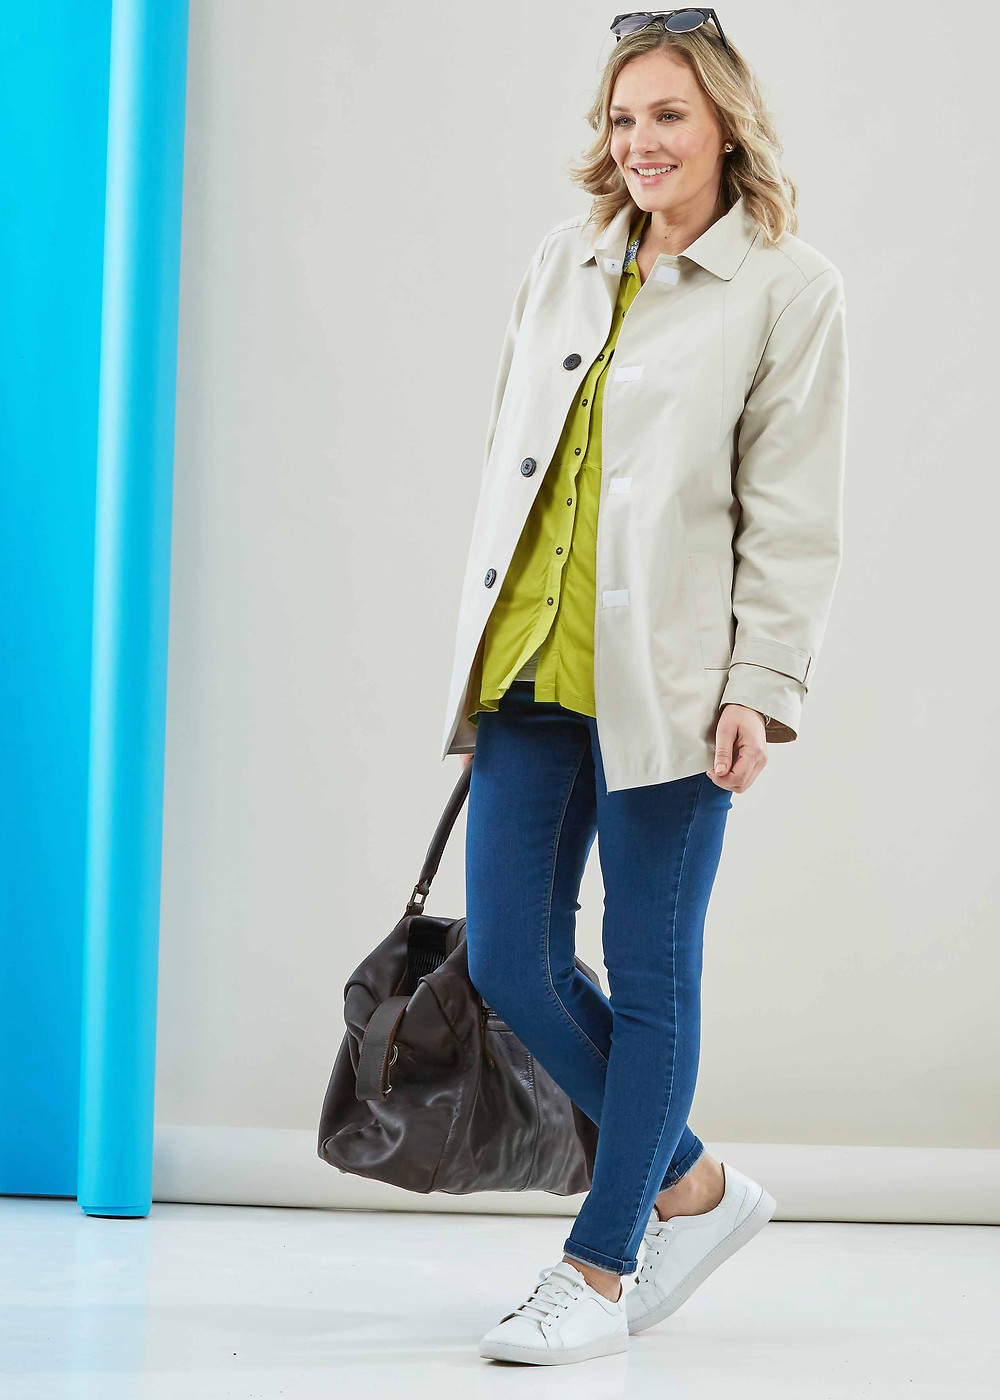 A blonde woman stands with a hip length cream coloures, a lime green shirt underneath, denim jeans and white trainers. She has a bag in her right hand and sunglasses on top of her head